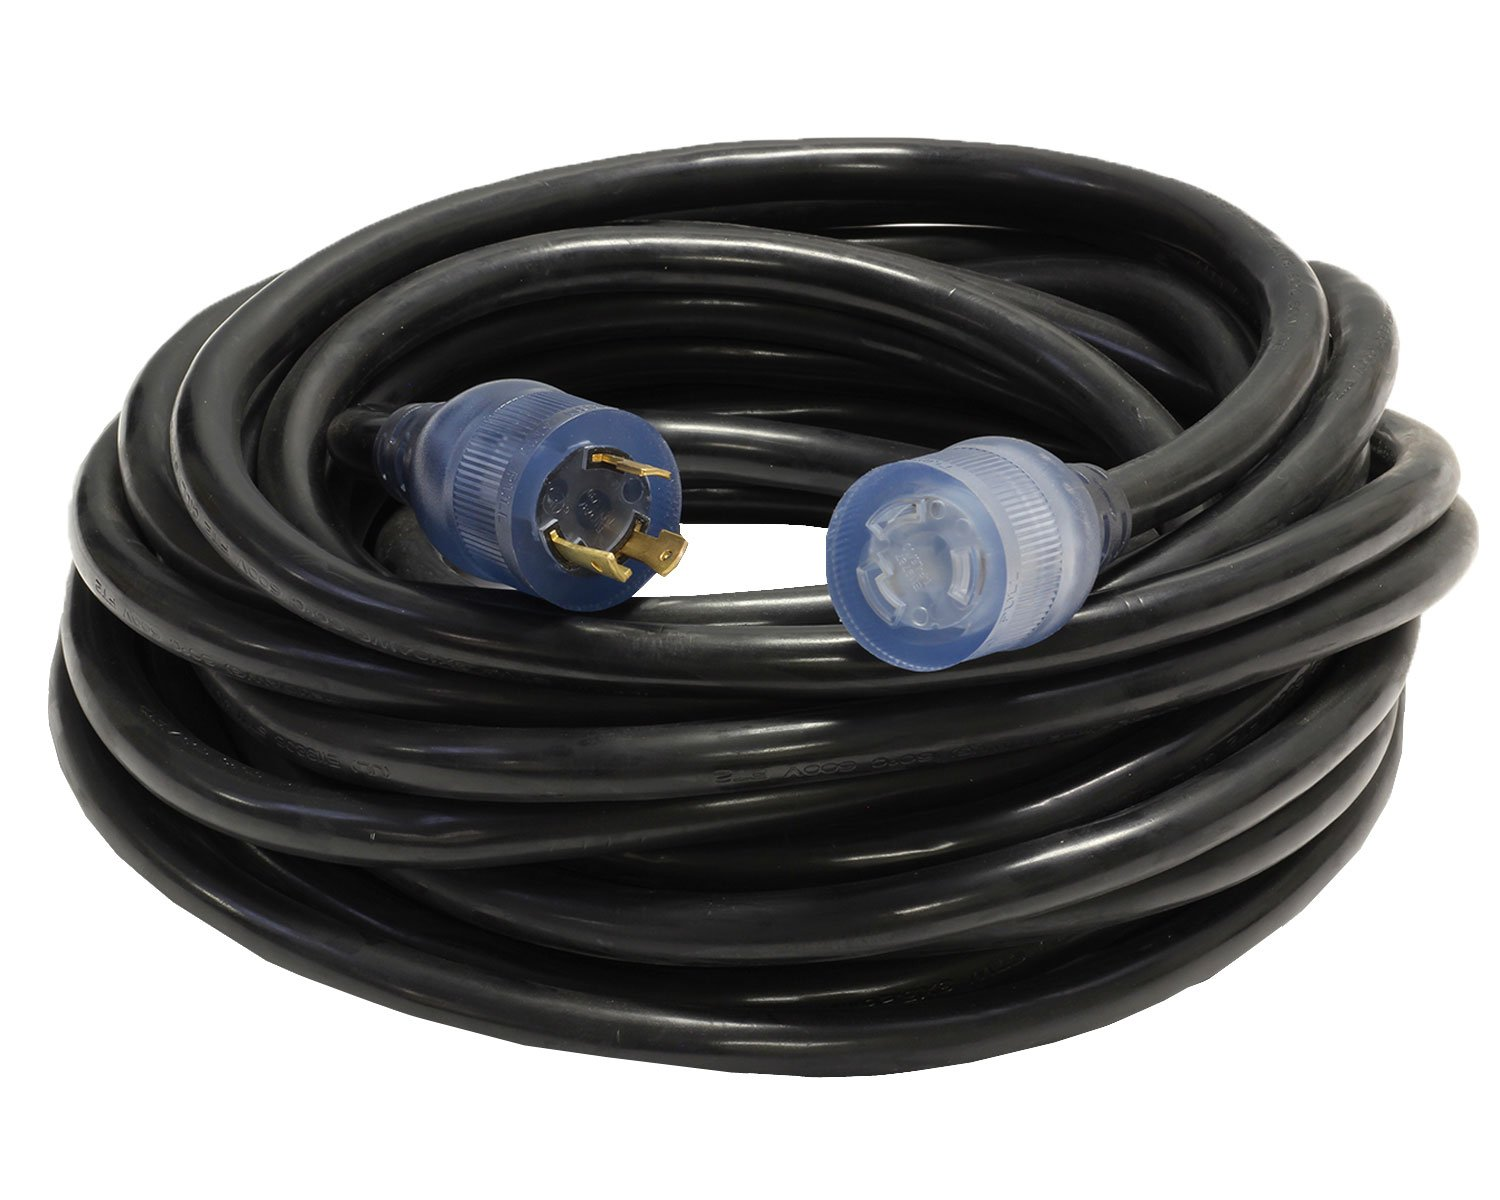 100-Foot 10/3 30A-250V NEMA L6-30 Lighted Seaming Machine Cord + Your Name on Cord